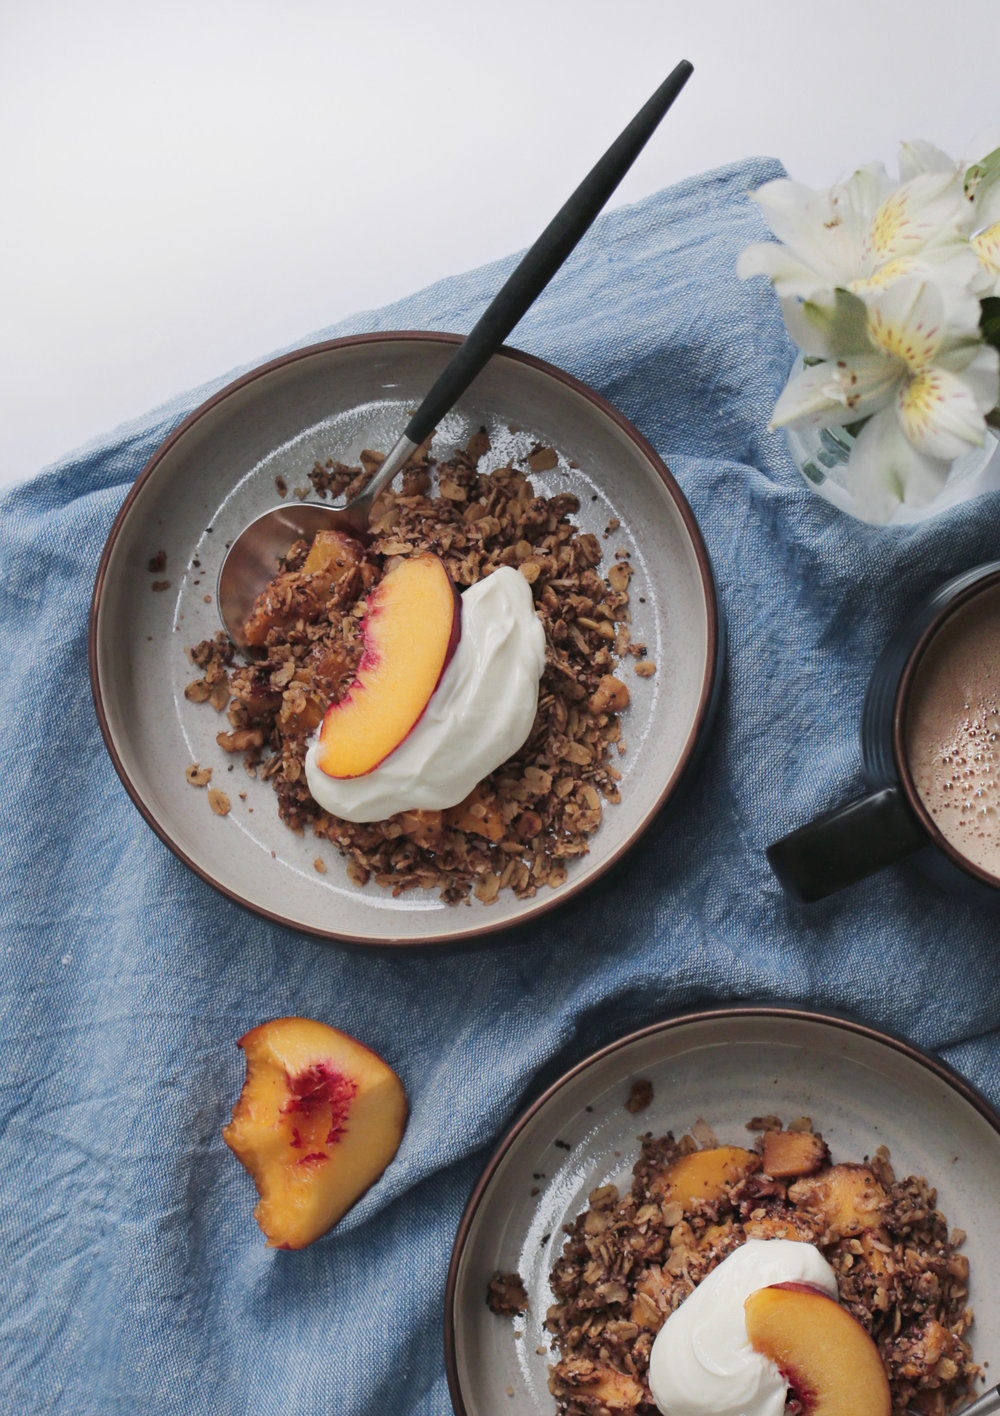 Peachy Oatmeal Bake | Purposeful Plate